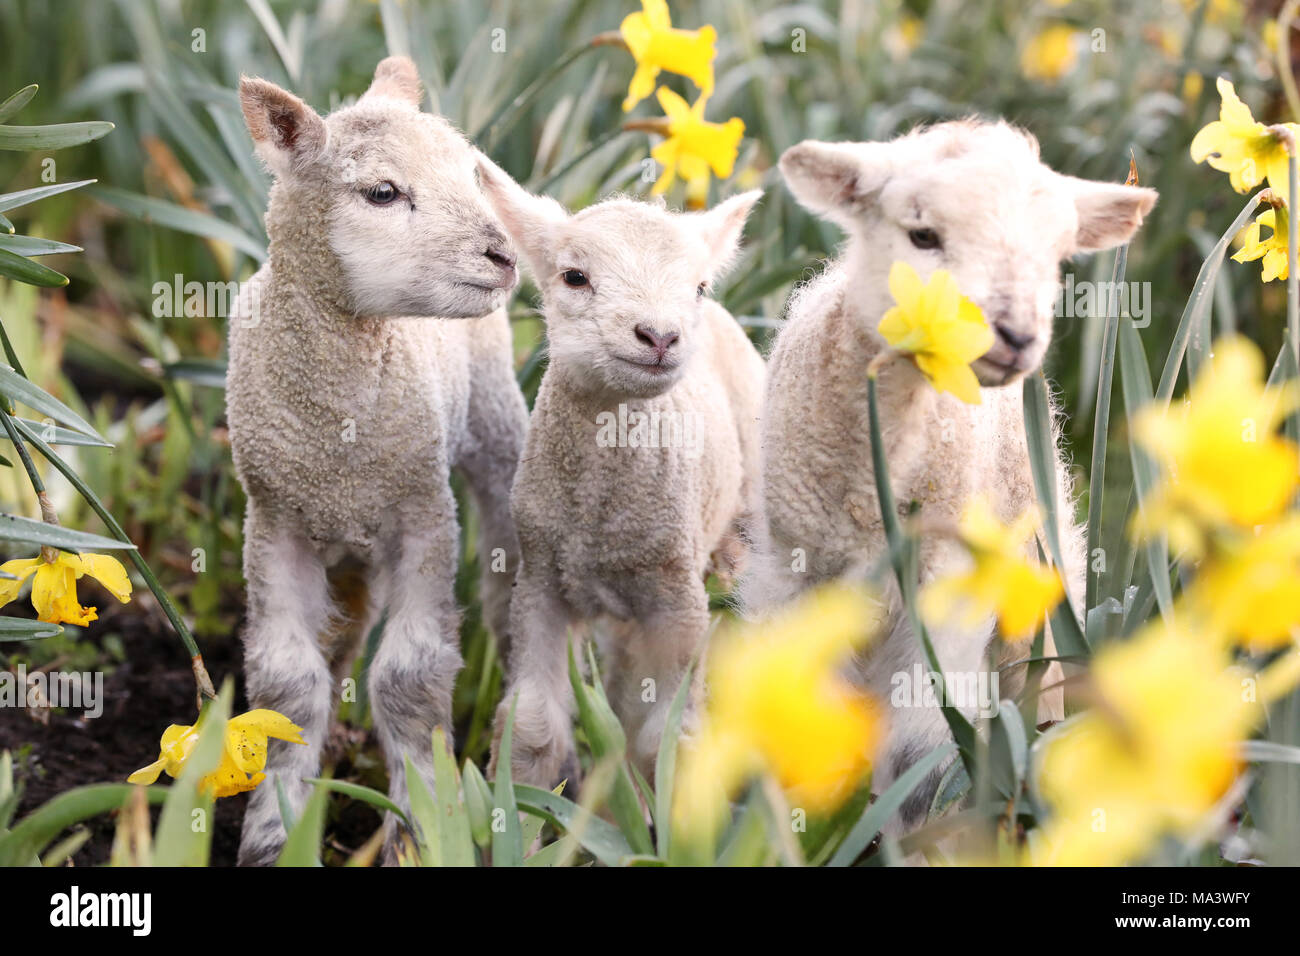 Bocketts Farm, Surrey, UK. 30th March, 2018. Three cute one day old spring lambs pictured enjoying the warm weather ahead of the projected Bank Holiday washout this weekend with heavy rain and cold temperatures forecast - Bocketts Farm, Surrey. Credit: Oliver Dixon/Alamy Live News - Stock Image